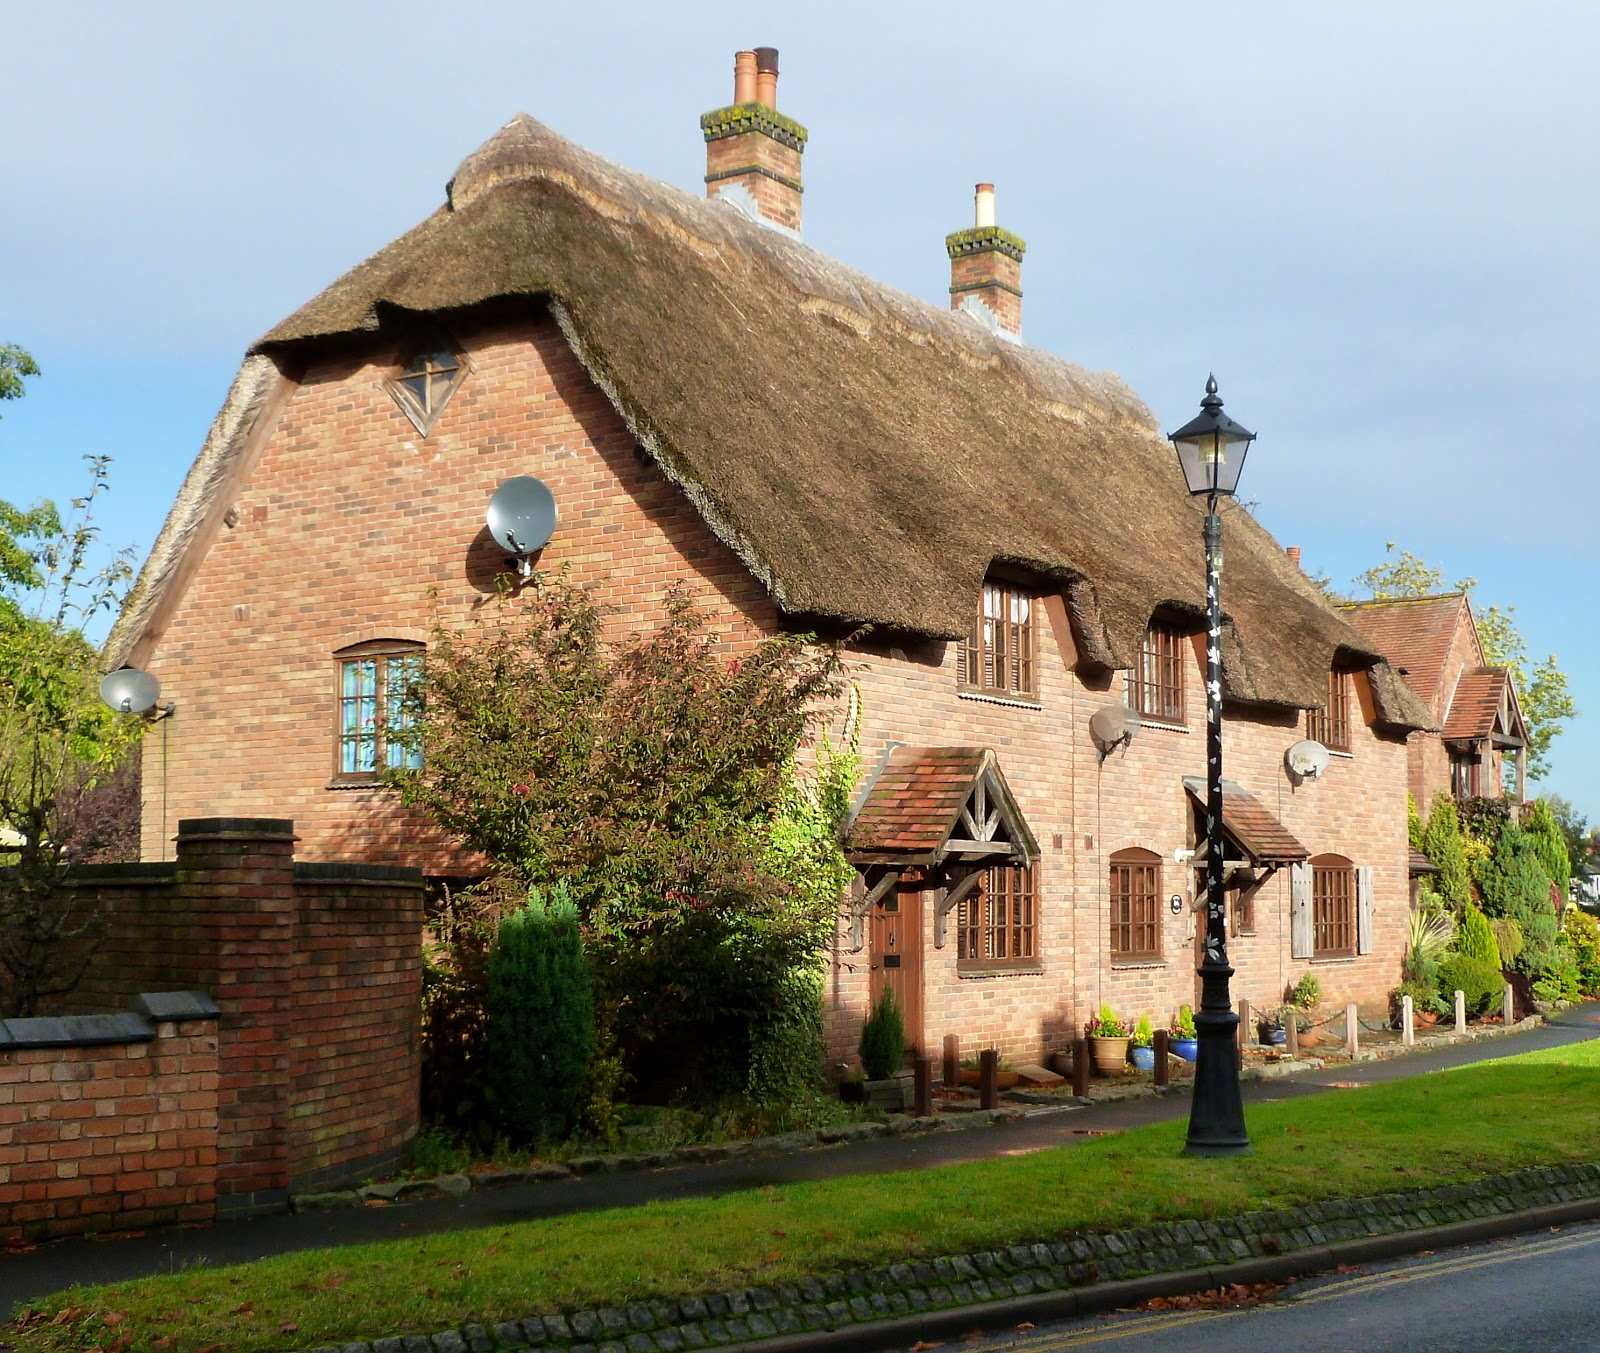 English Village Apartments: Today Around Coventry: October 2012